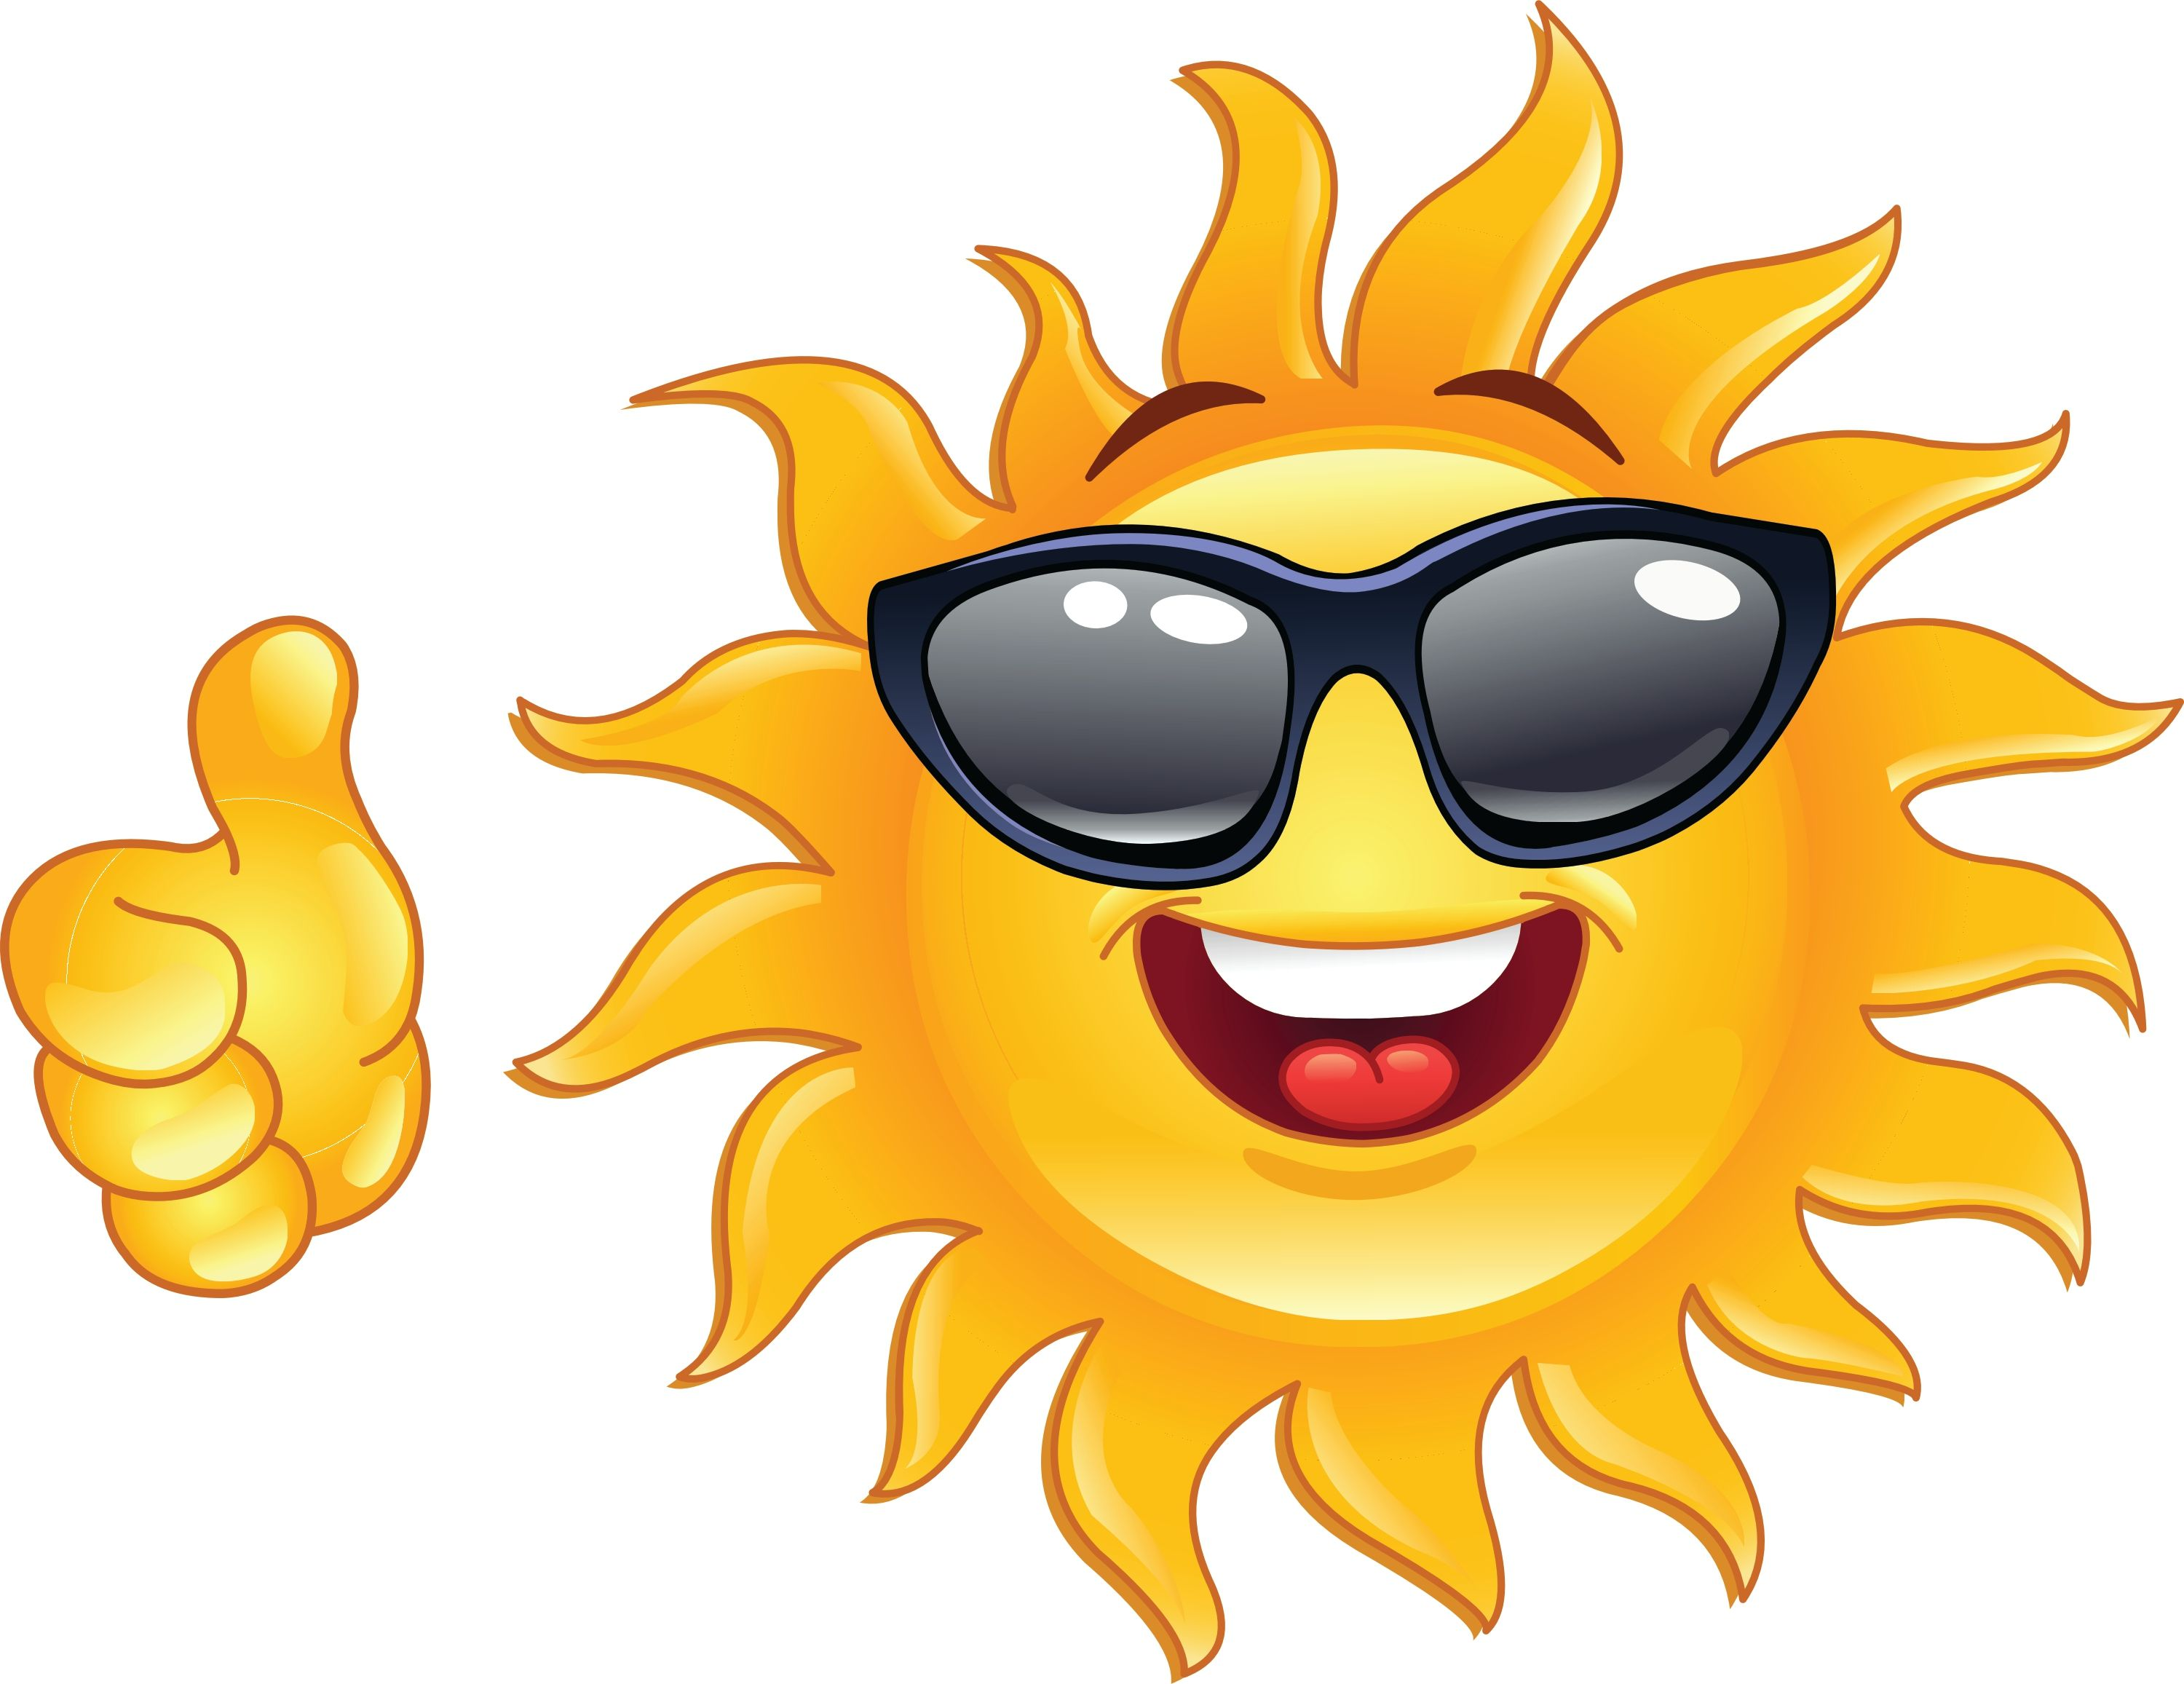 Sun with smiley face clipart png library library smiley-face emotions clip art | thumbs up smiley face clip ... png library library